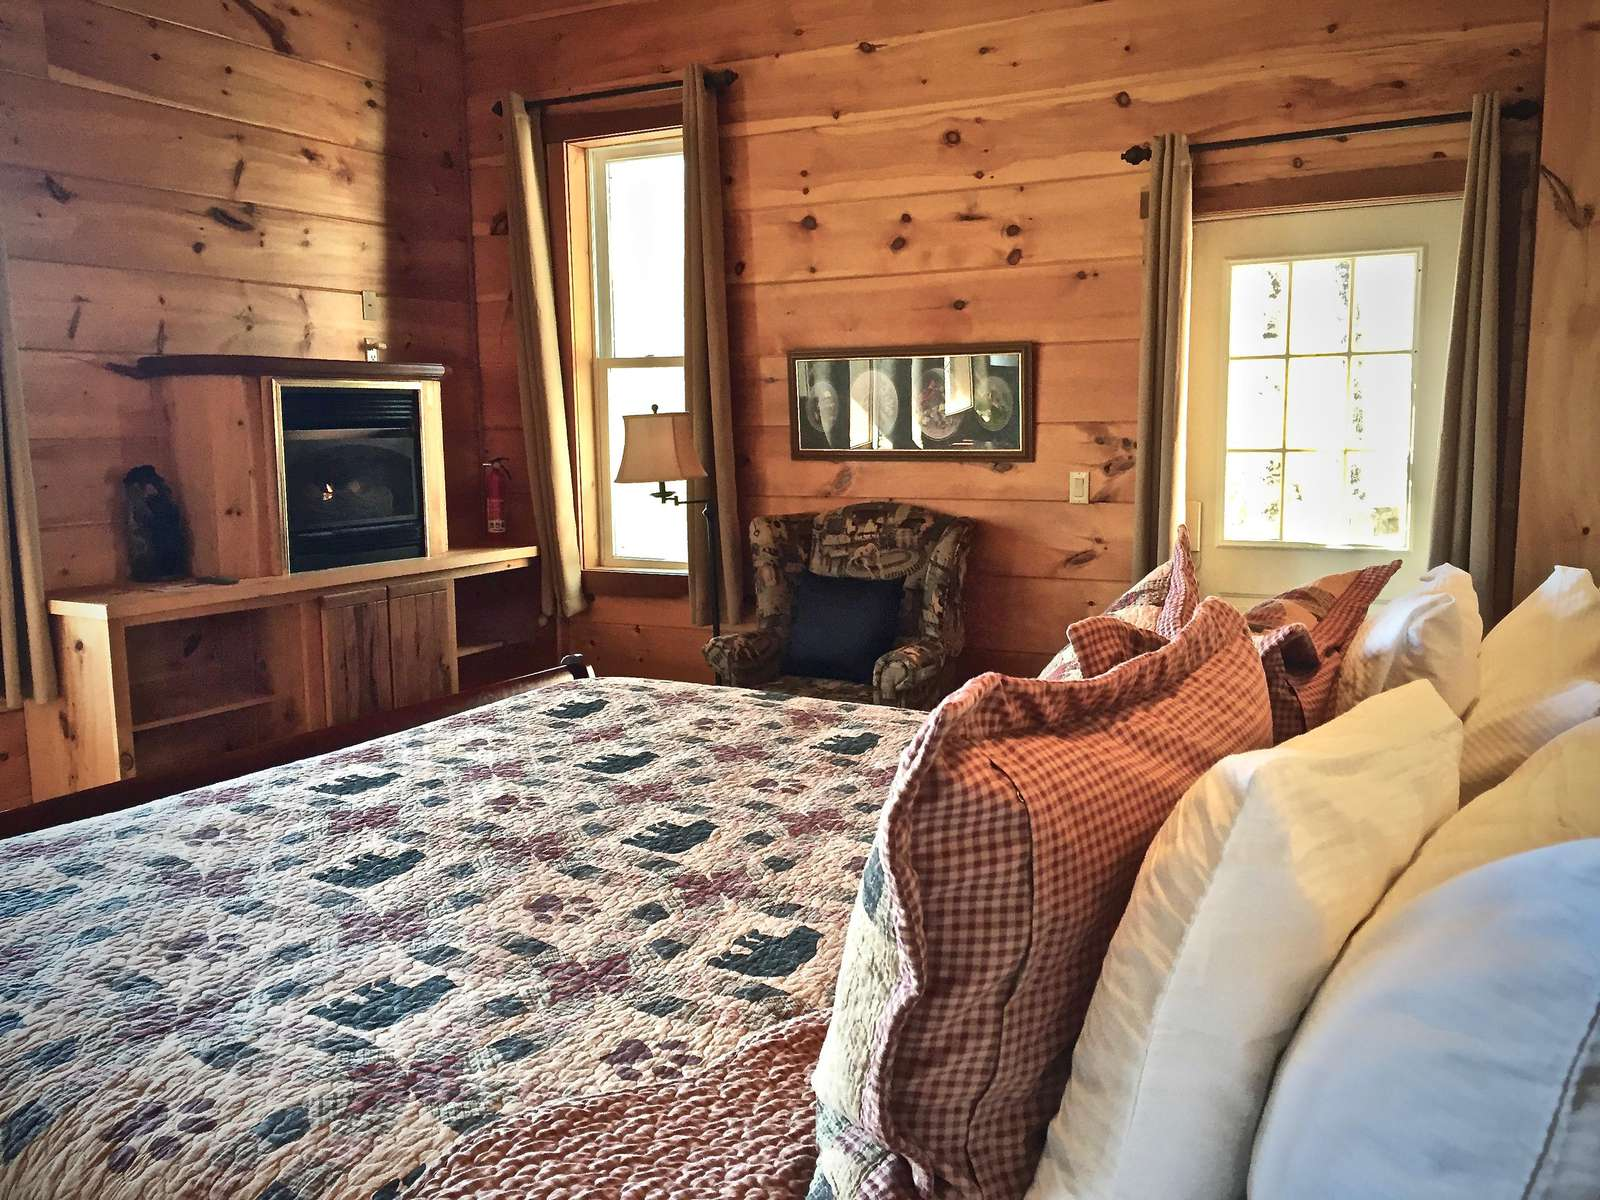 King Bed offers Pillow Top Mattress, Luxury Linens and Bedding, and the second Fireplace